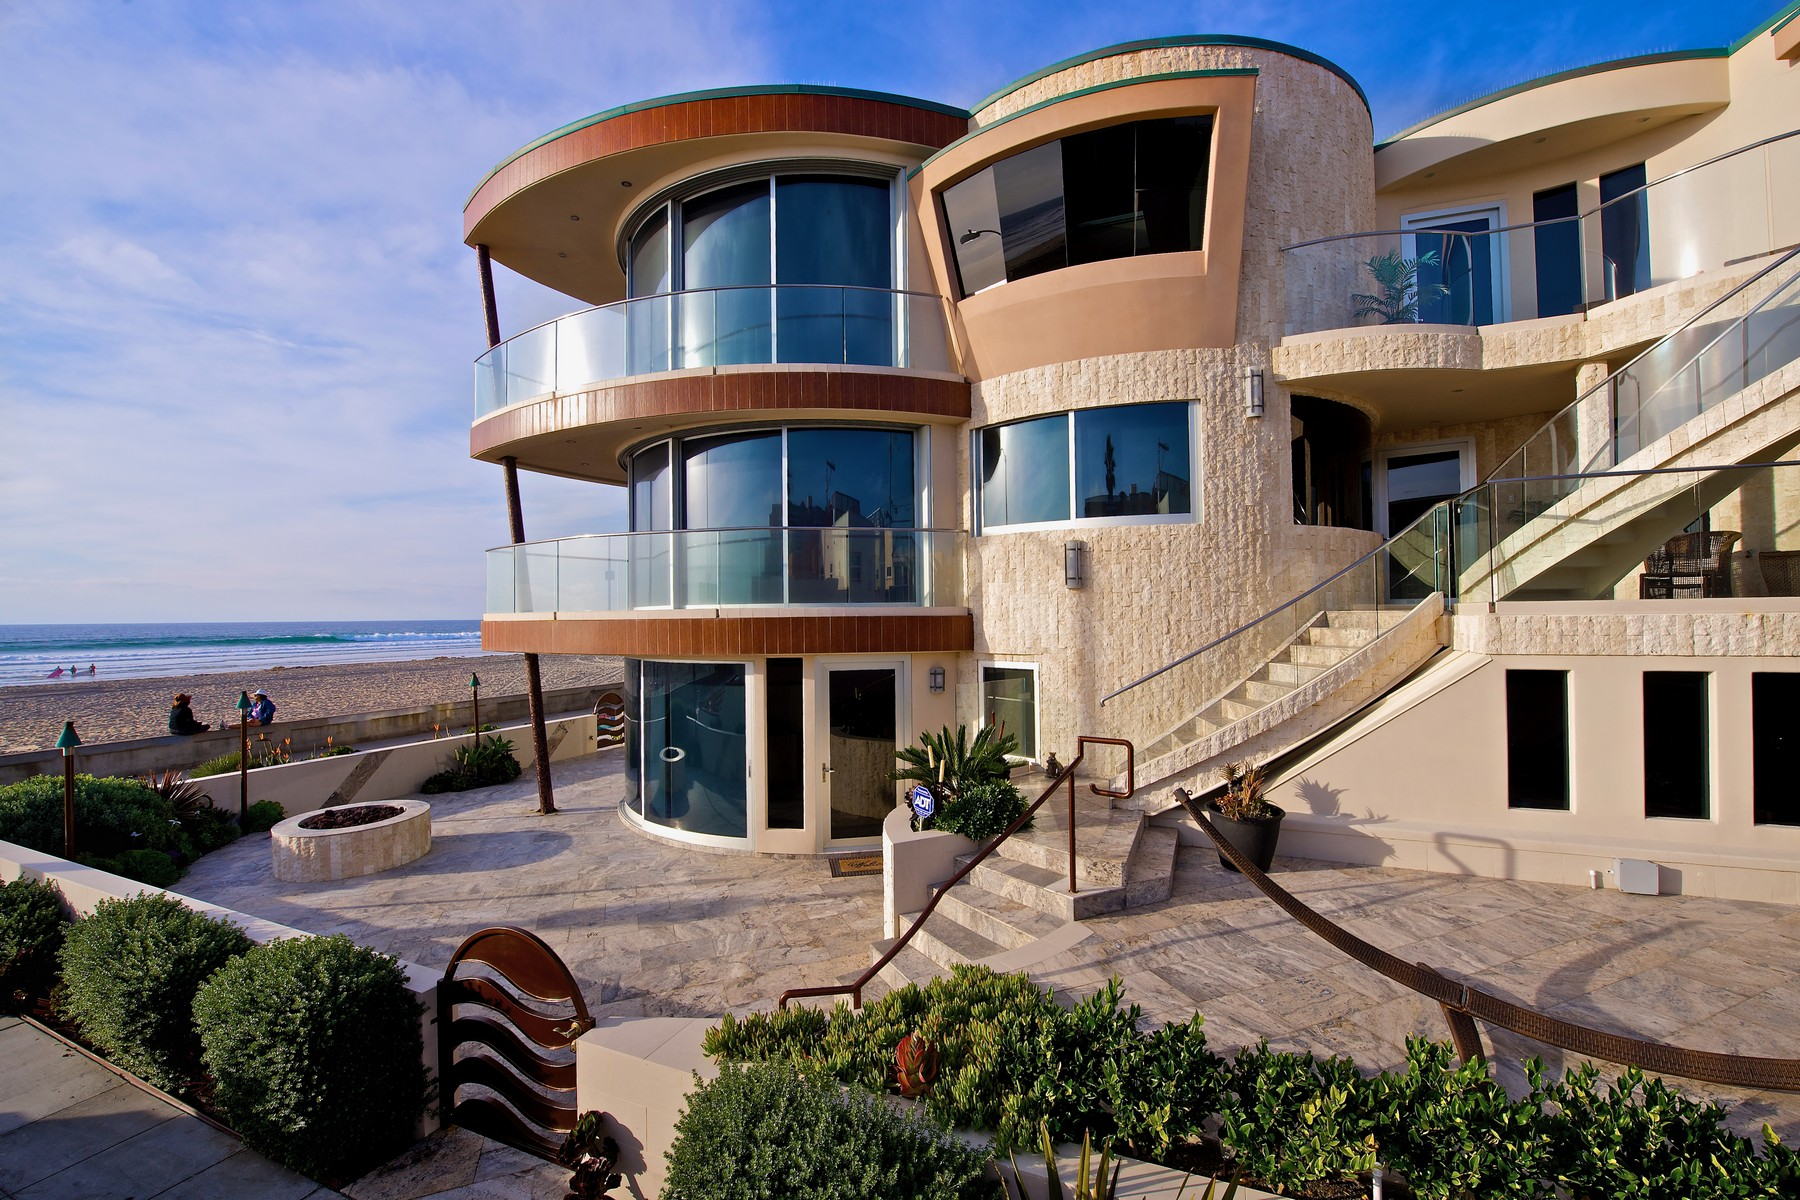 Single Family Home for Sale at Architectural Masterpiece- Mission Beach 3675 Ocean Front Walk, San Diego, California, 92109 United States